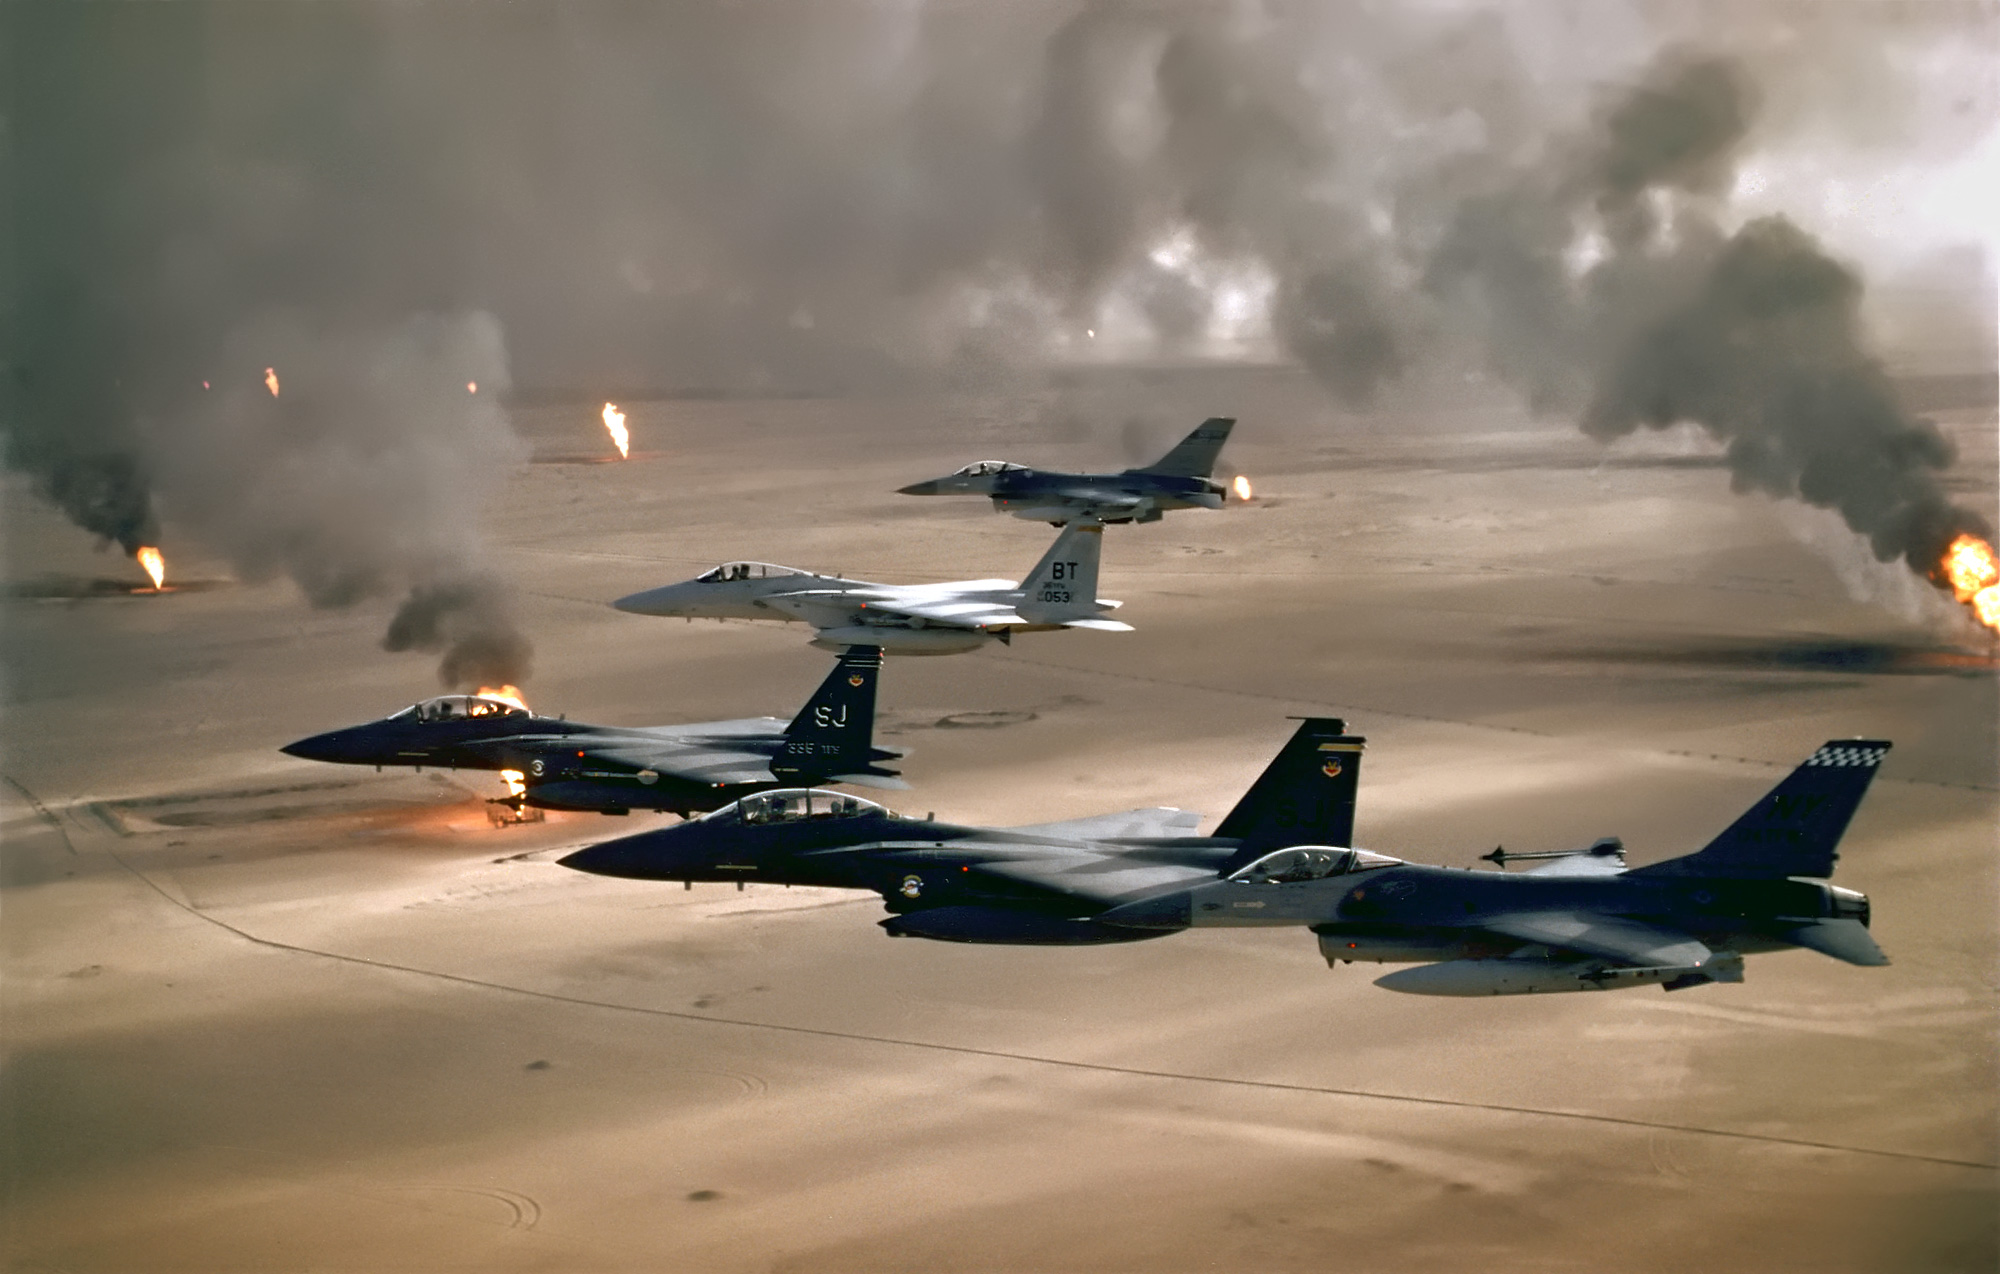 Bombs over Baghdad